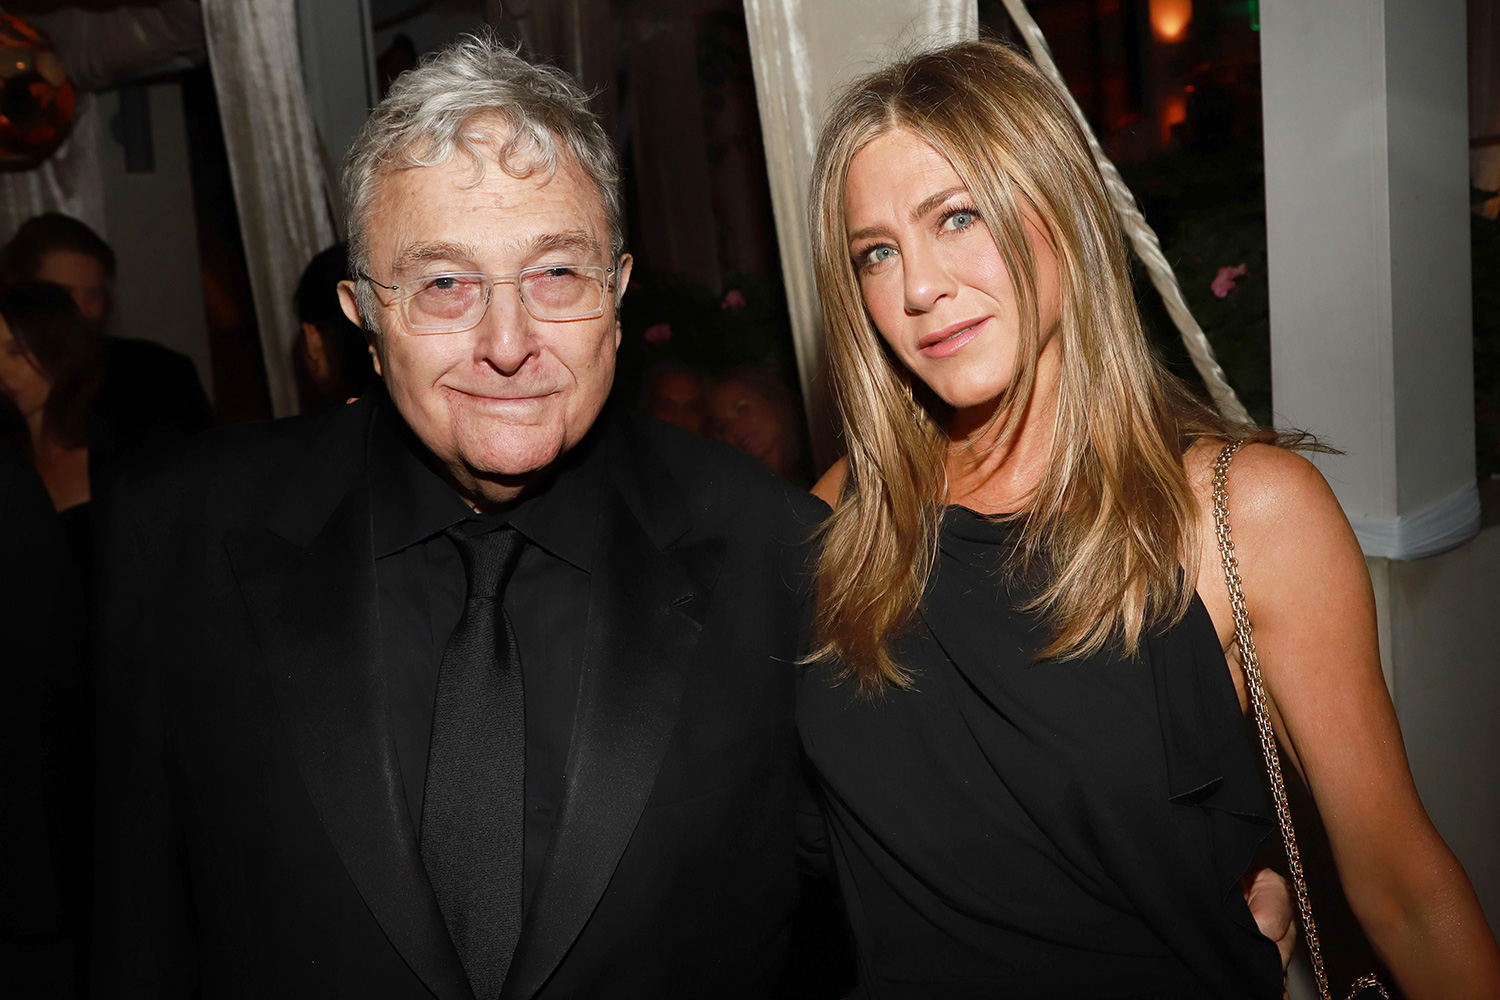 Randy Newman and Jennifer Aniston attend the 2020 Netflix Oscar After Party at San Vicente Bugalows on February 09, 2020 in West Hollywood, California